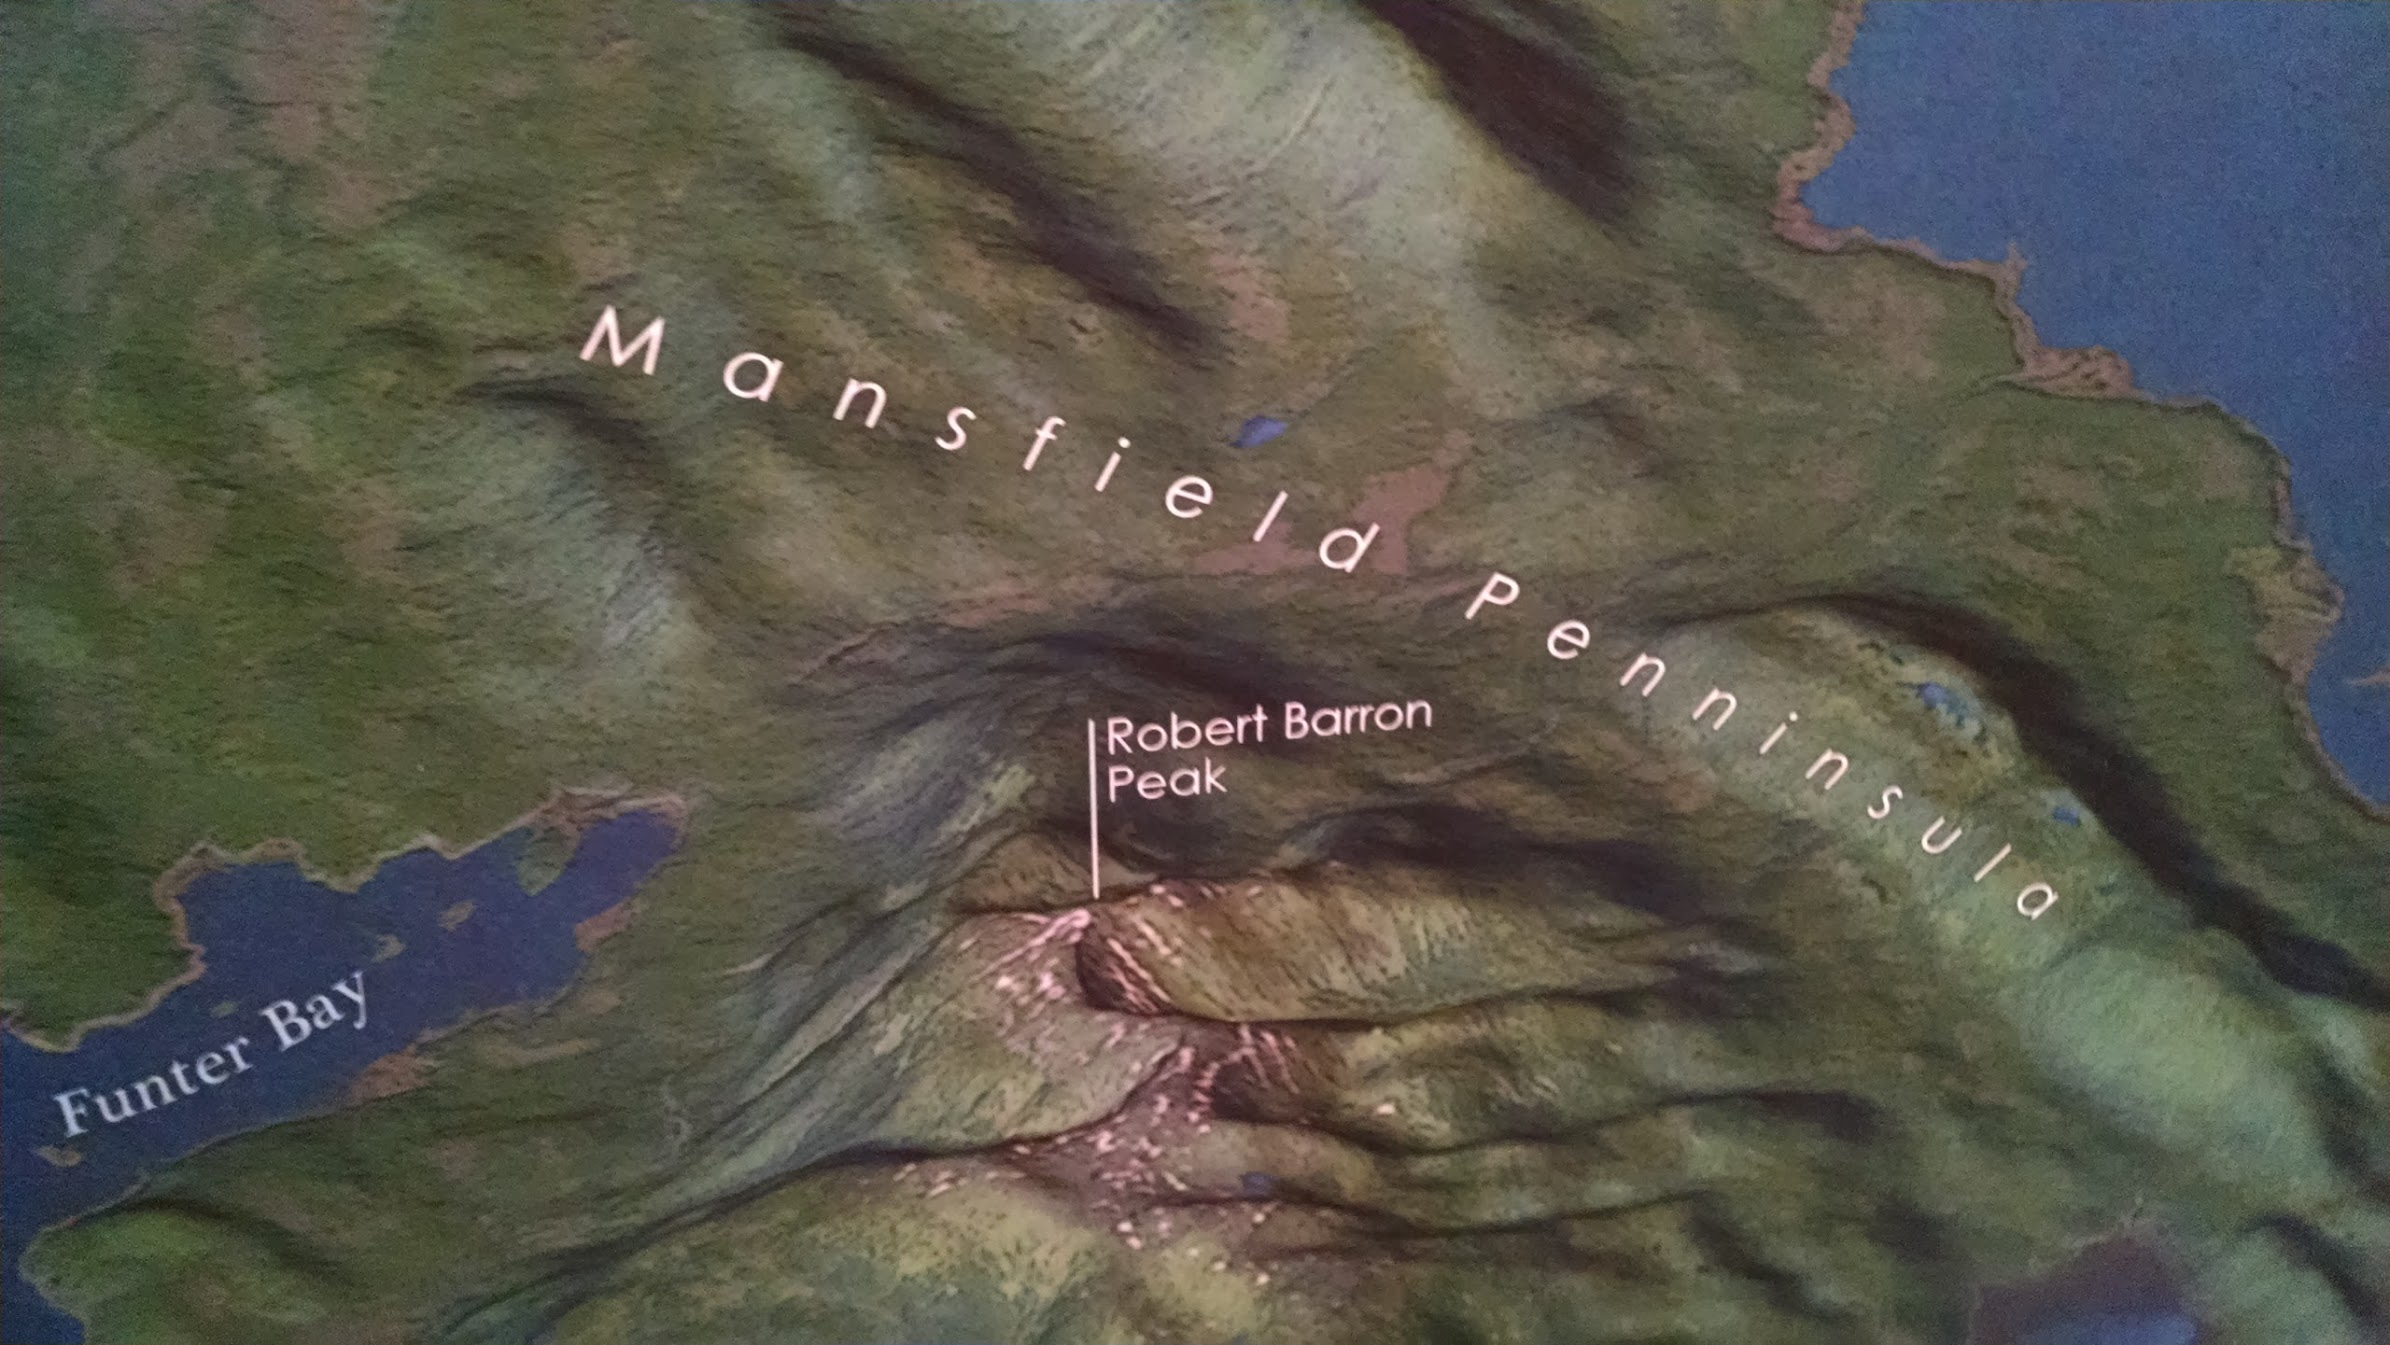 Robert Barron Peak